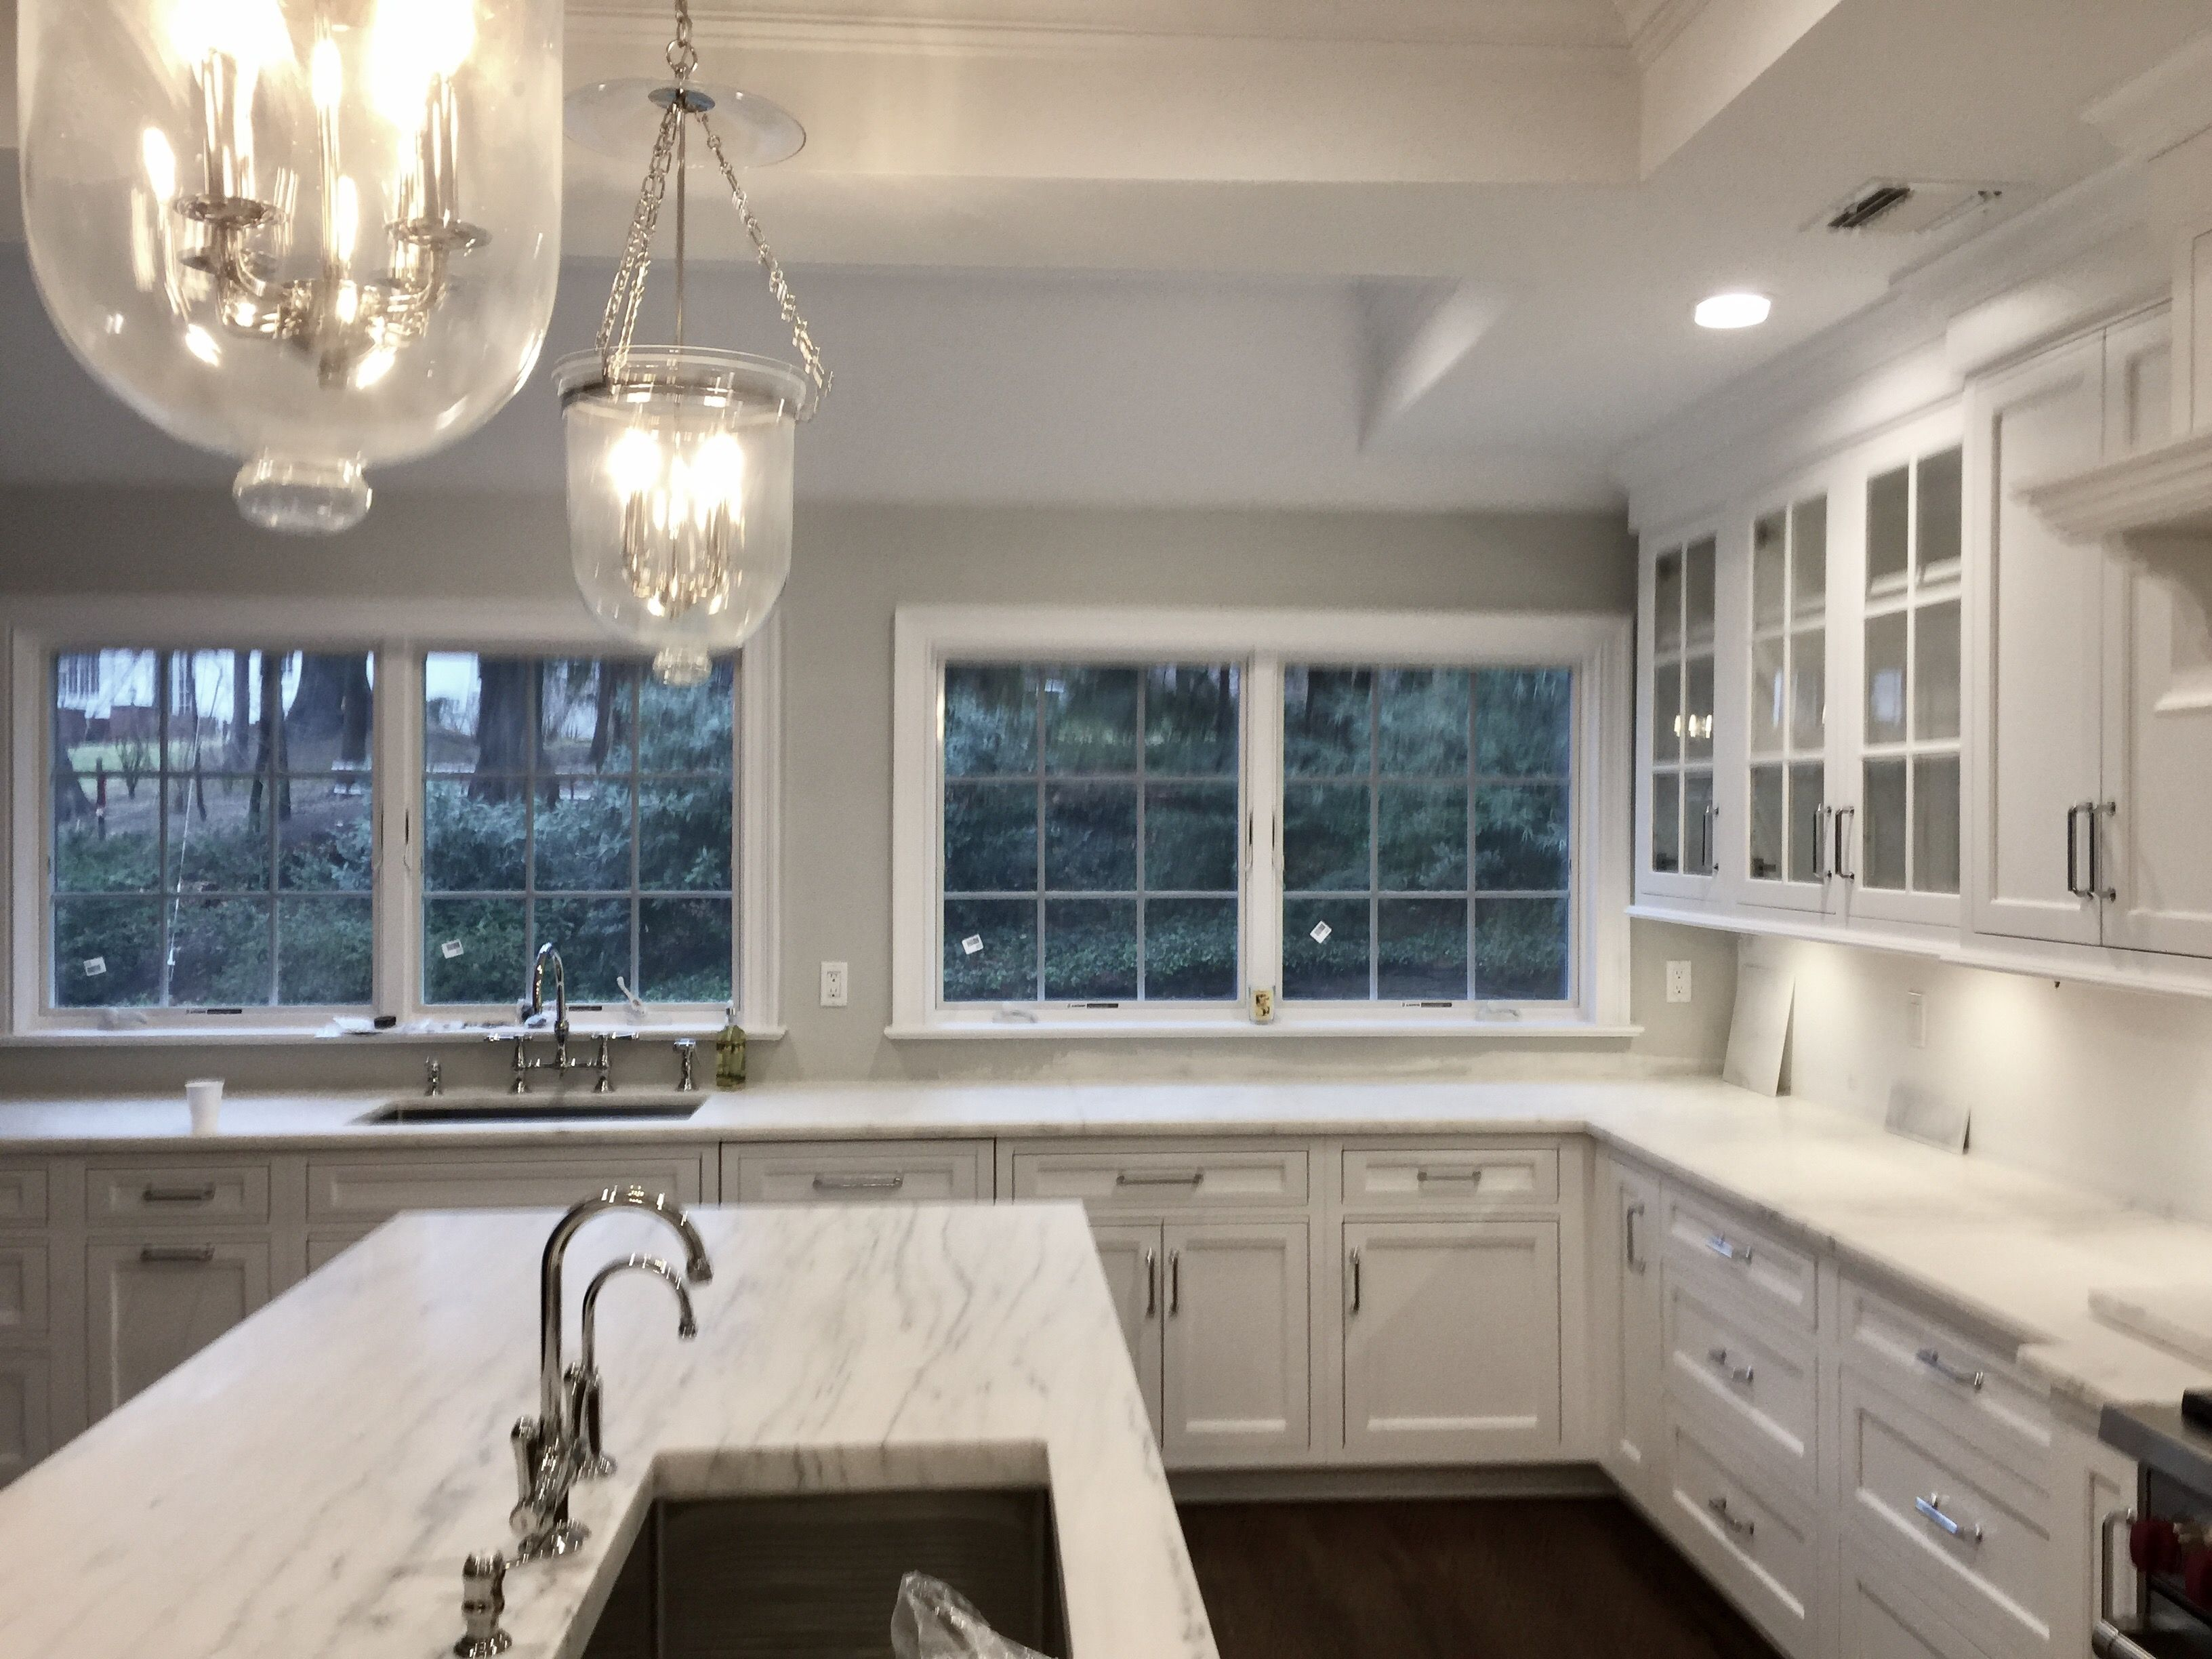 Designing A Customized Kitchen Cabinetry Is What The Experts Do For You Kitchen Cabinetry Kitchen Luxury Kitchens